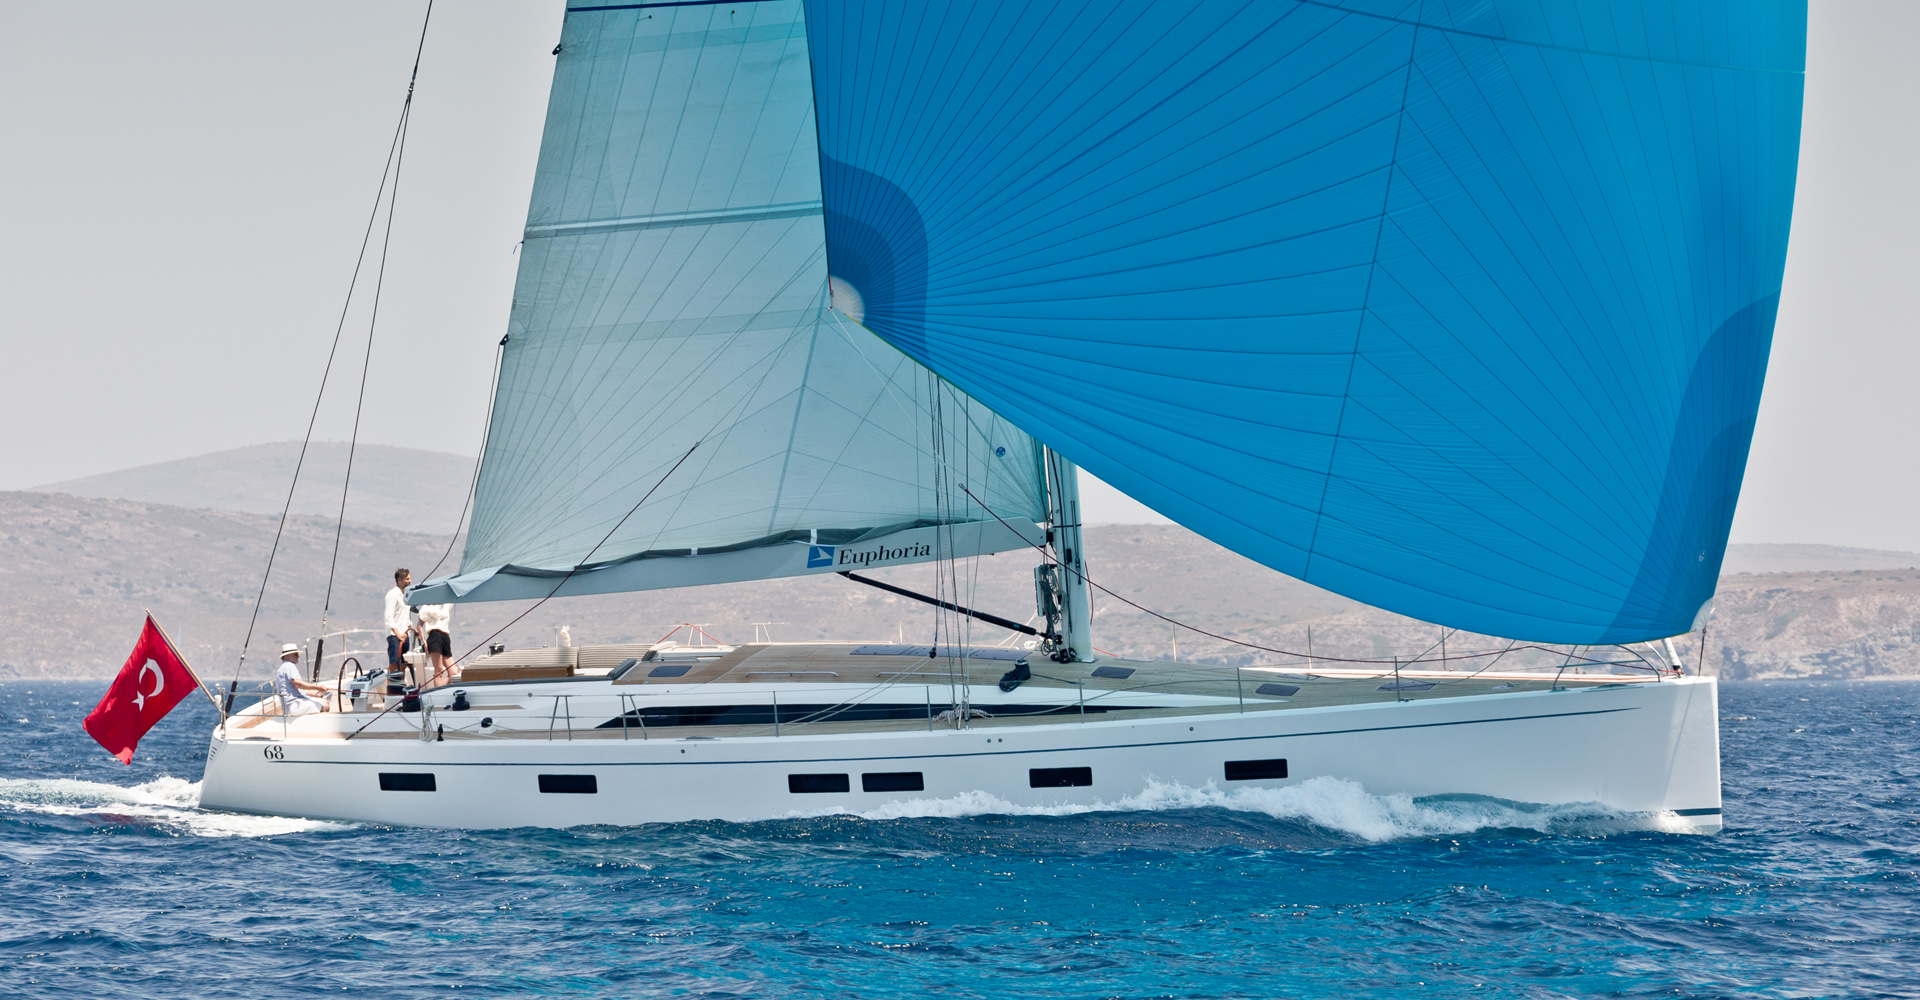 Sailing shot of the Euphoria 68